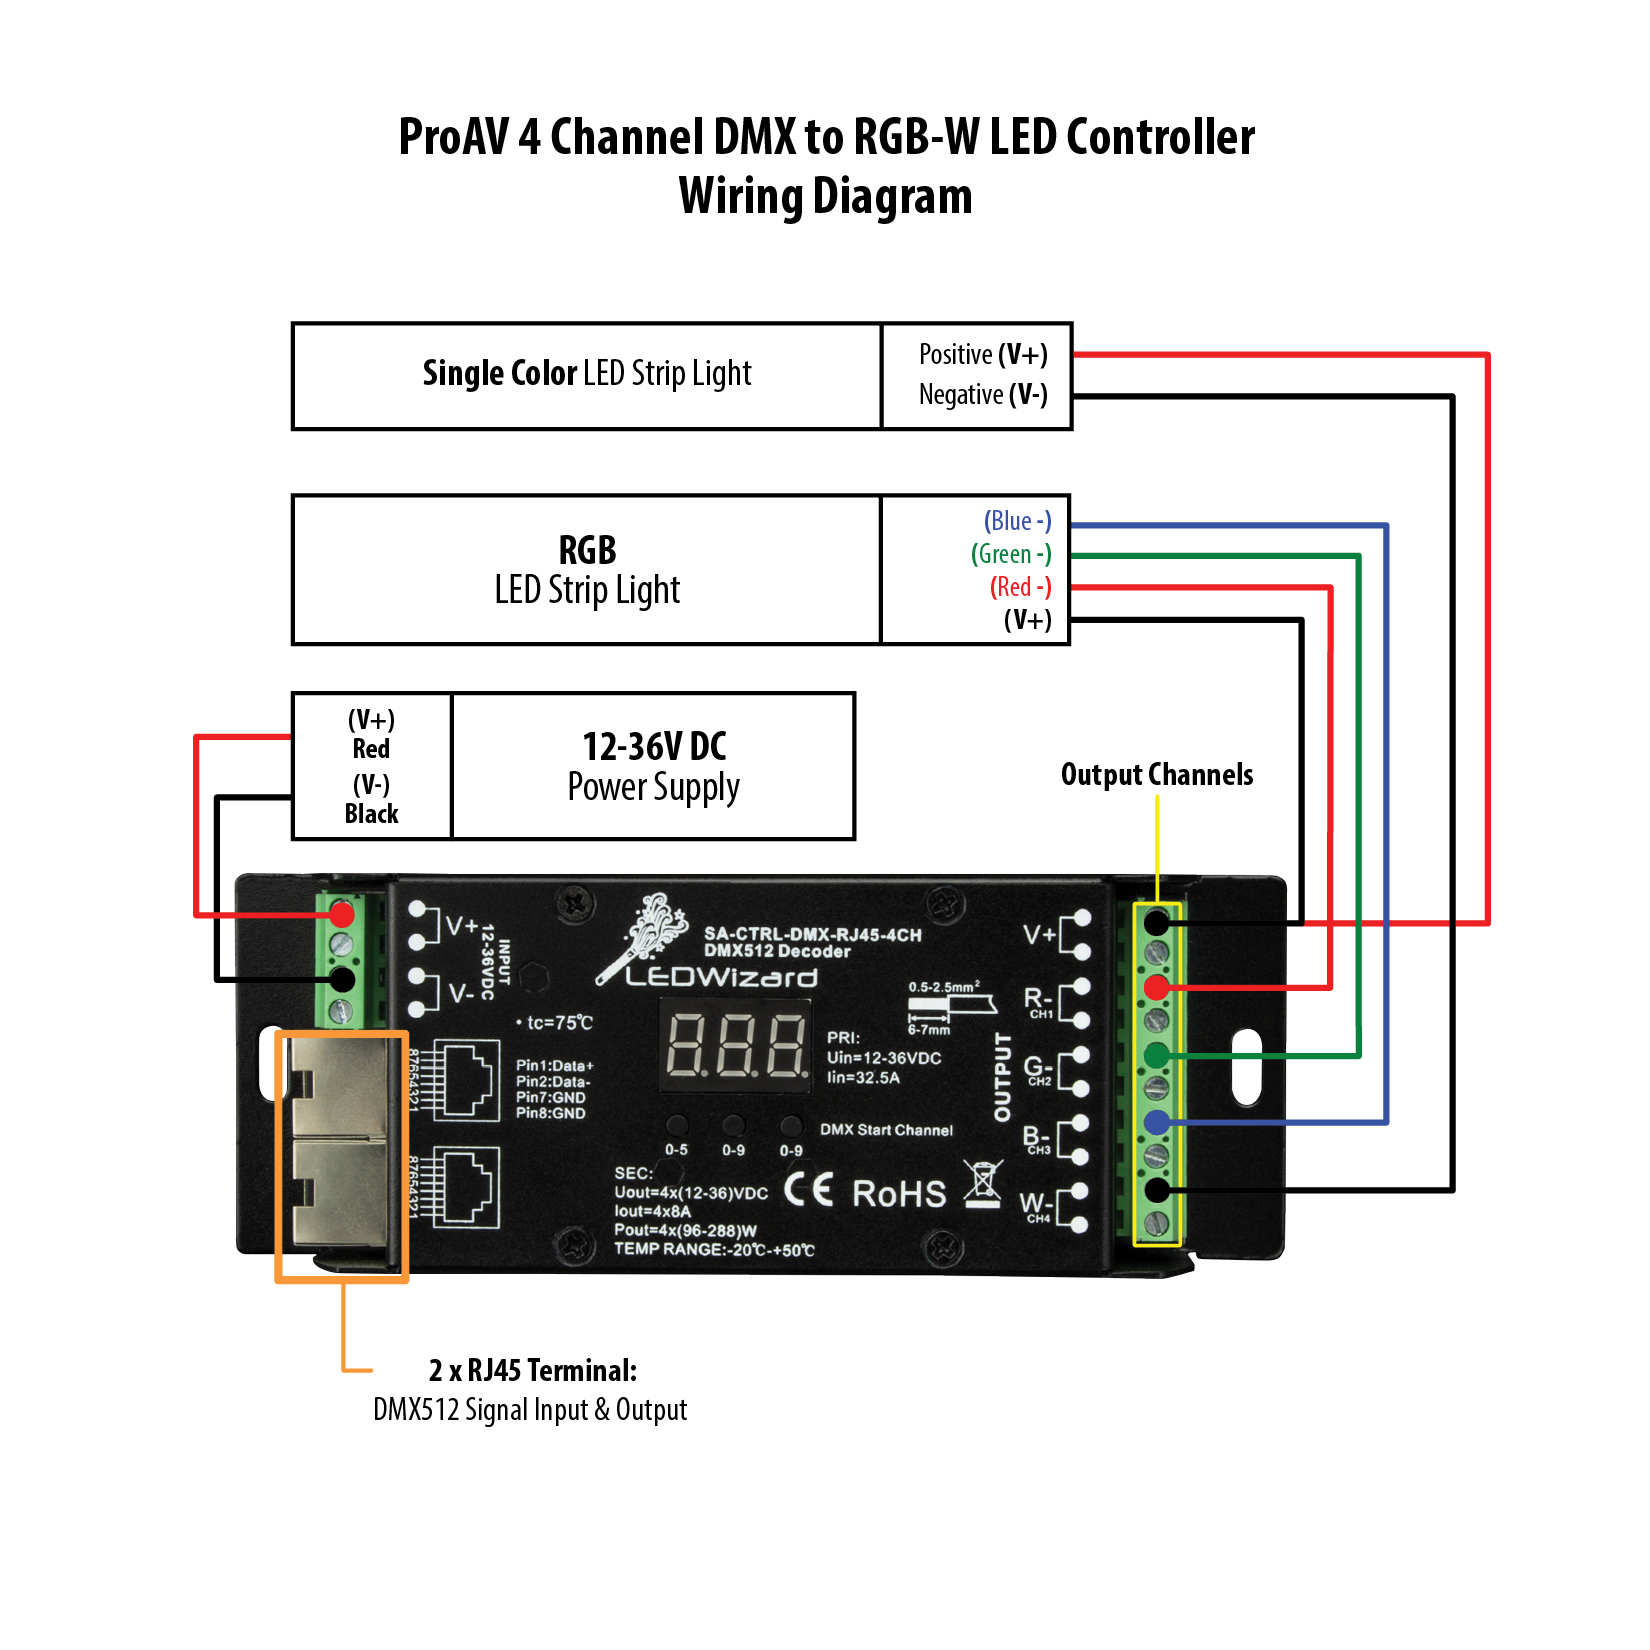 hight resolution of proav 4 channel dmx to rgb w led controller dmx rgb led strip controller besides dmx led controller wiring diagram